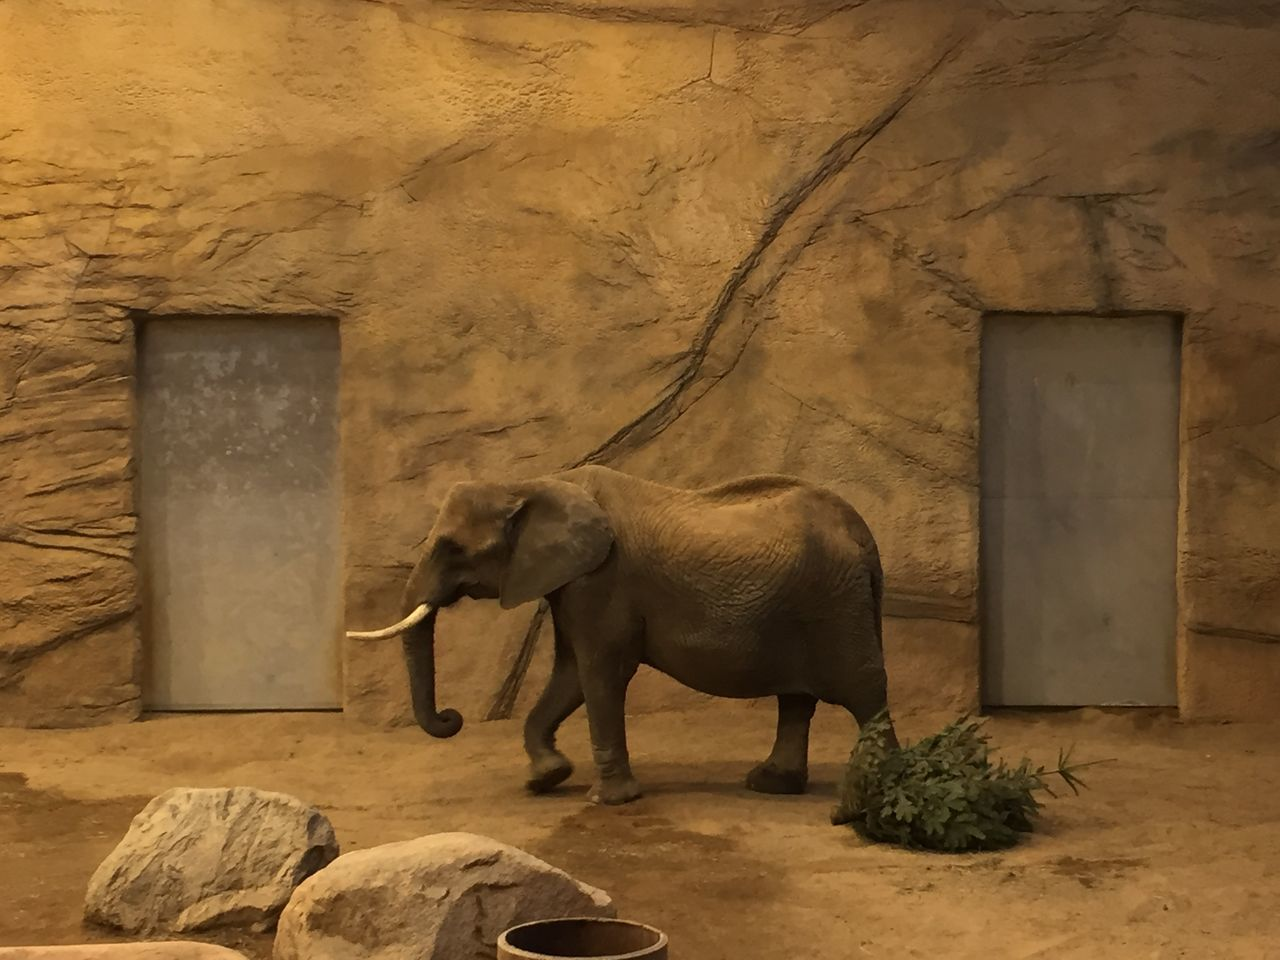 elephant, mammal, animal themes, standing, no people, animals in the wild, day, indoors, architecture, animal trunk, nature